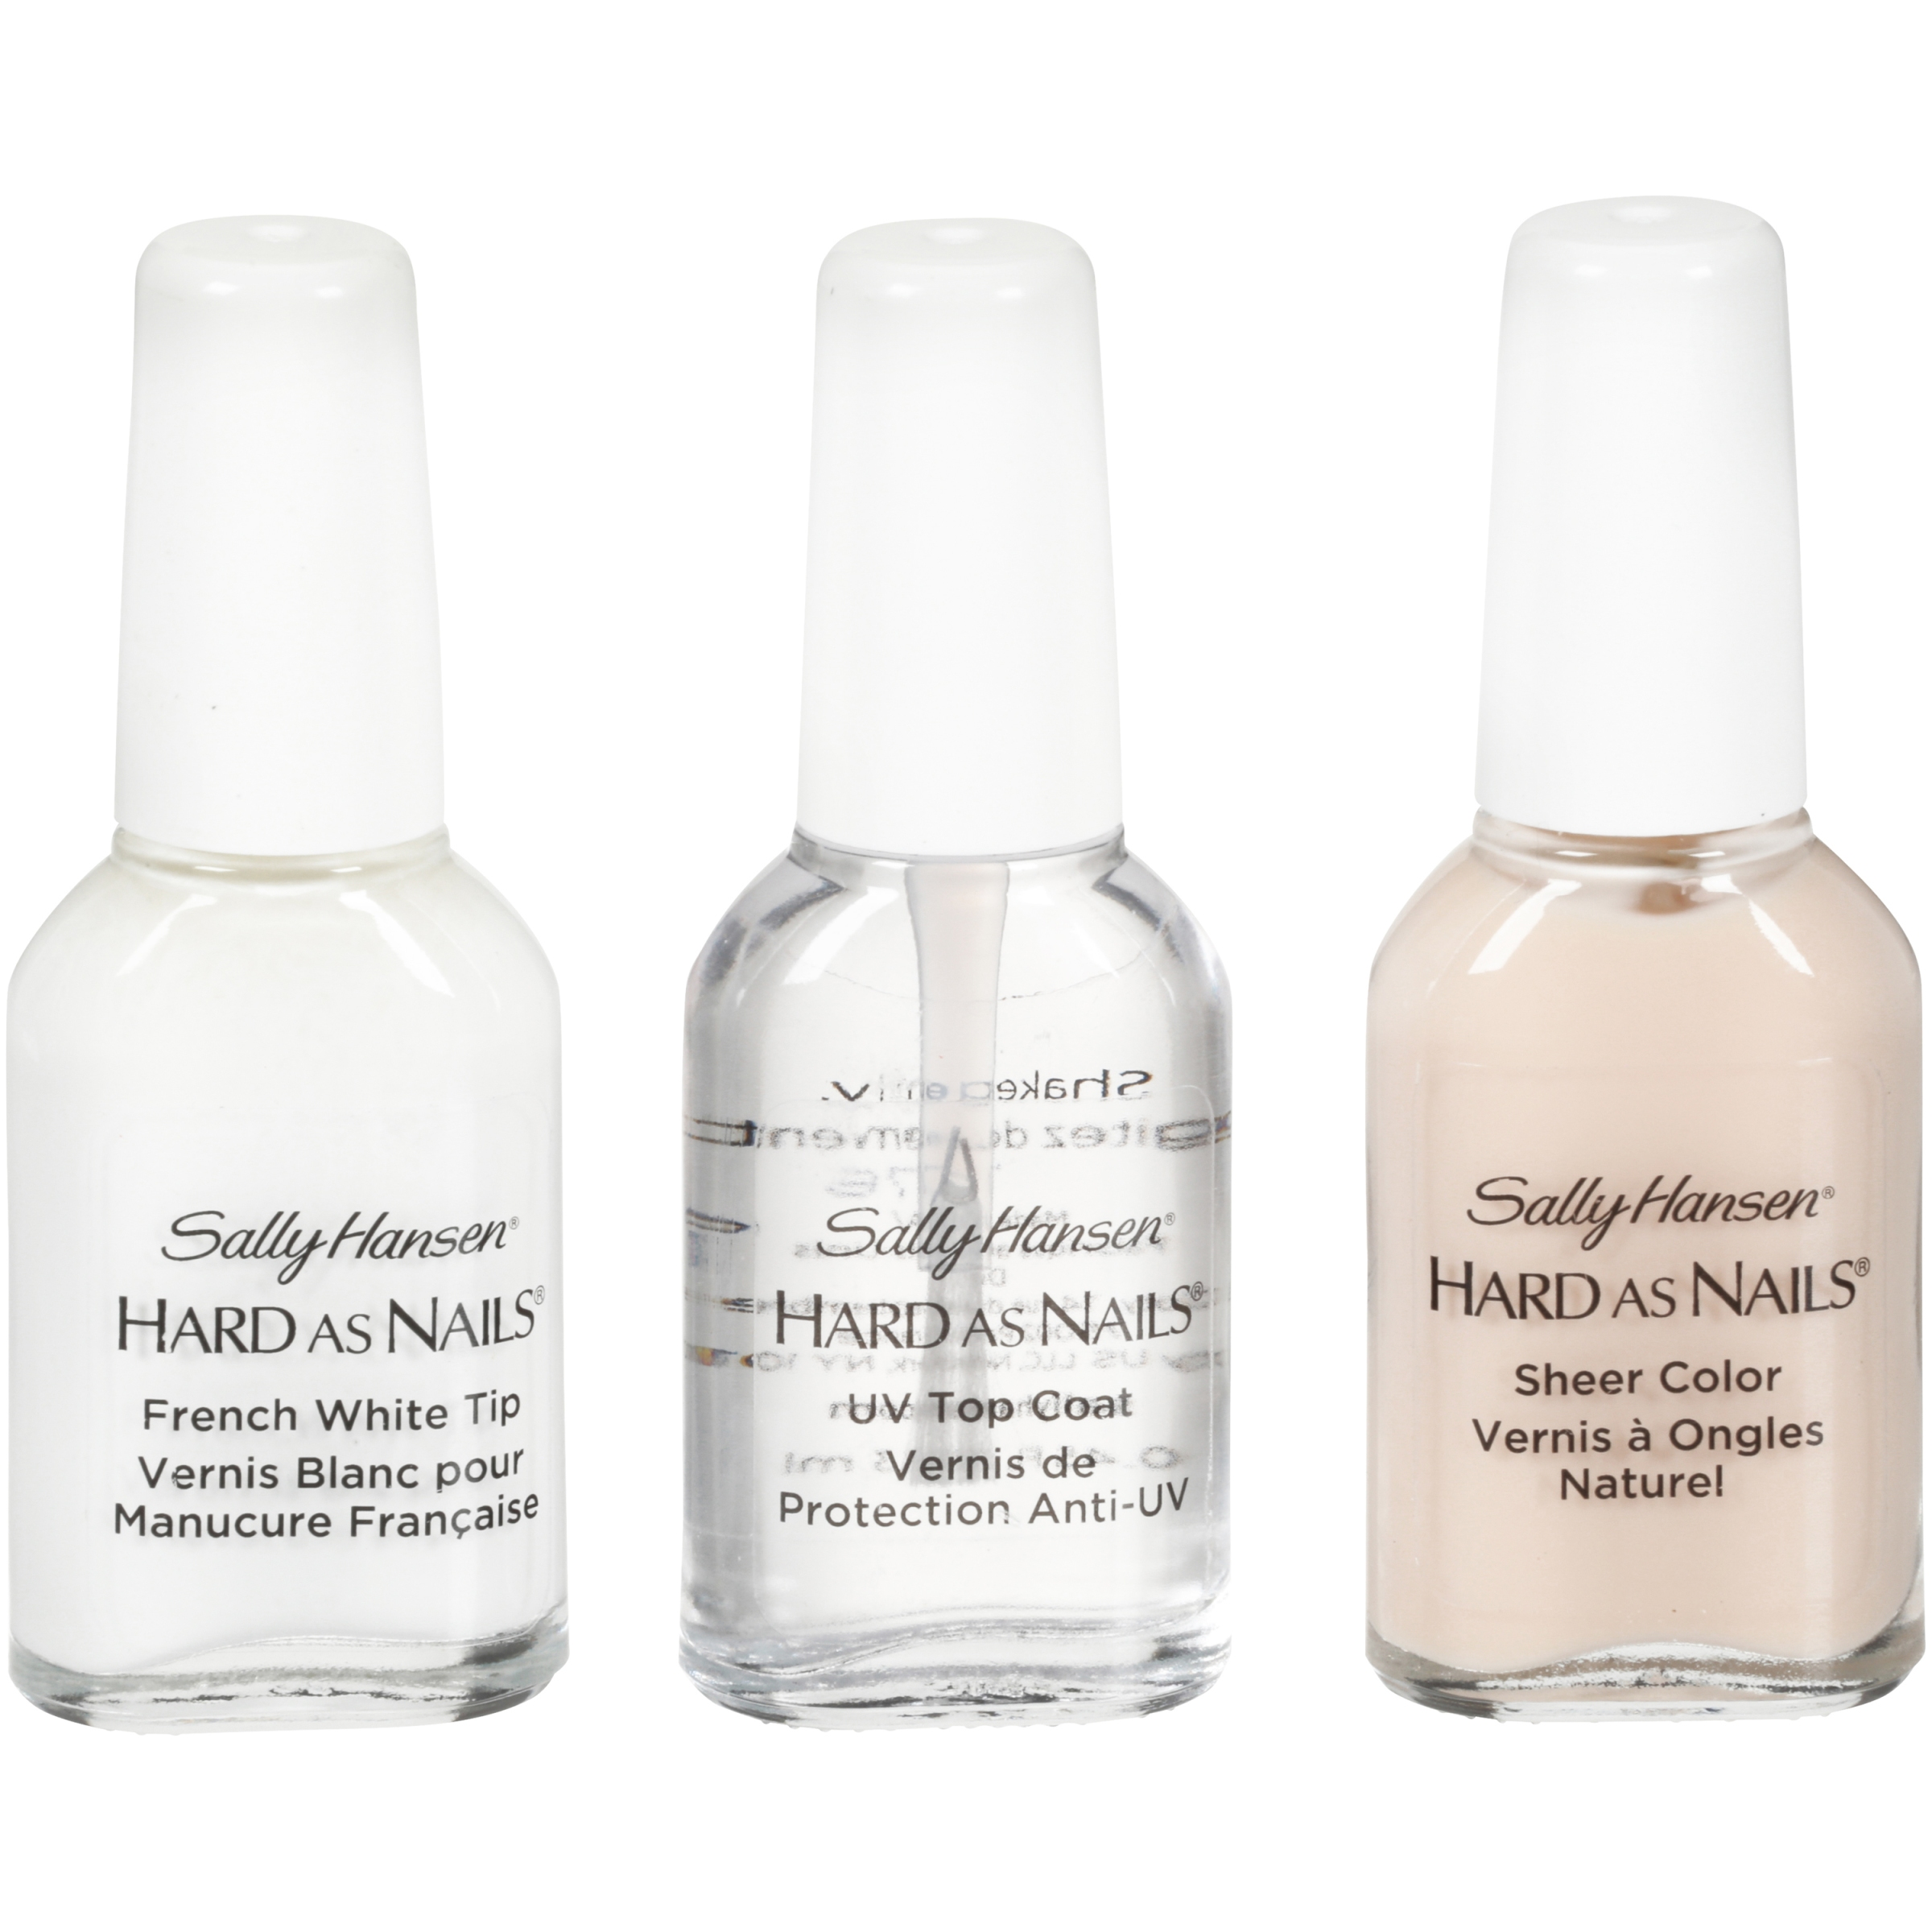 Sally Hansen Hard As Nails Nearly Nude French Manicure Kit